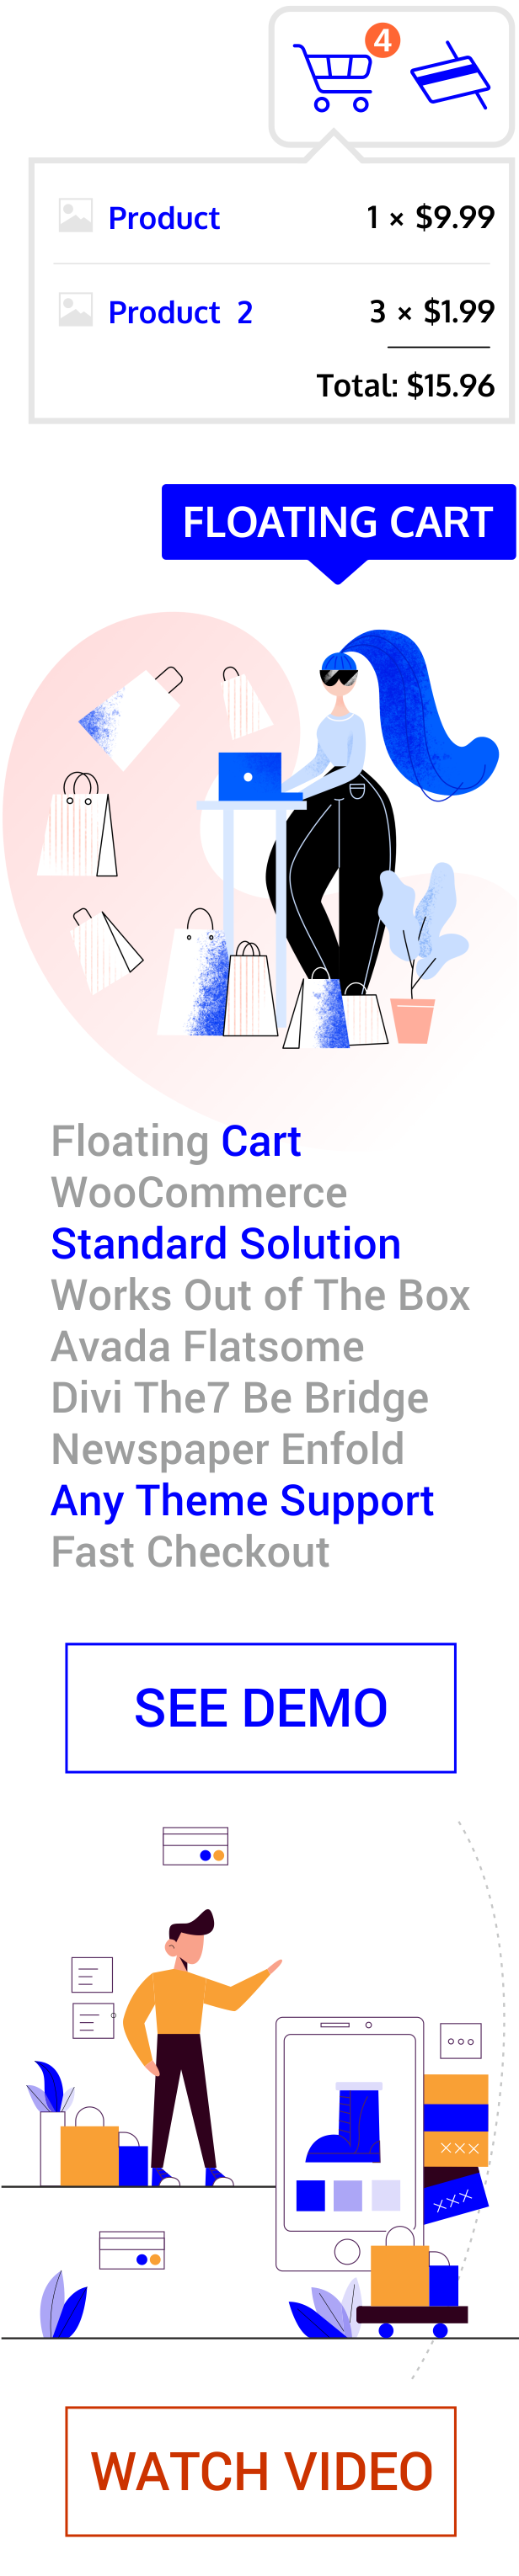 Floating Cart for WooCommerce - 2